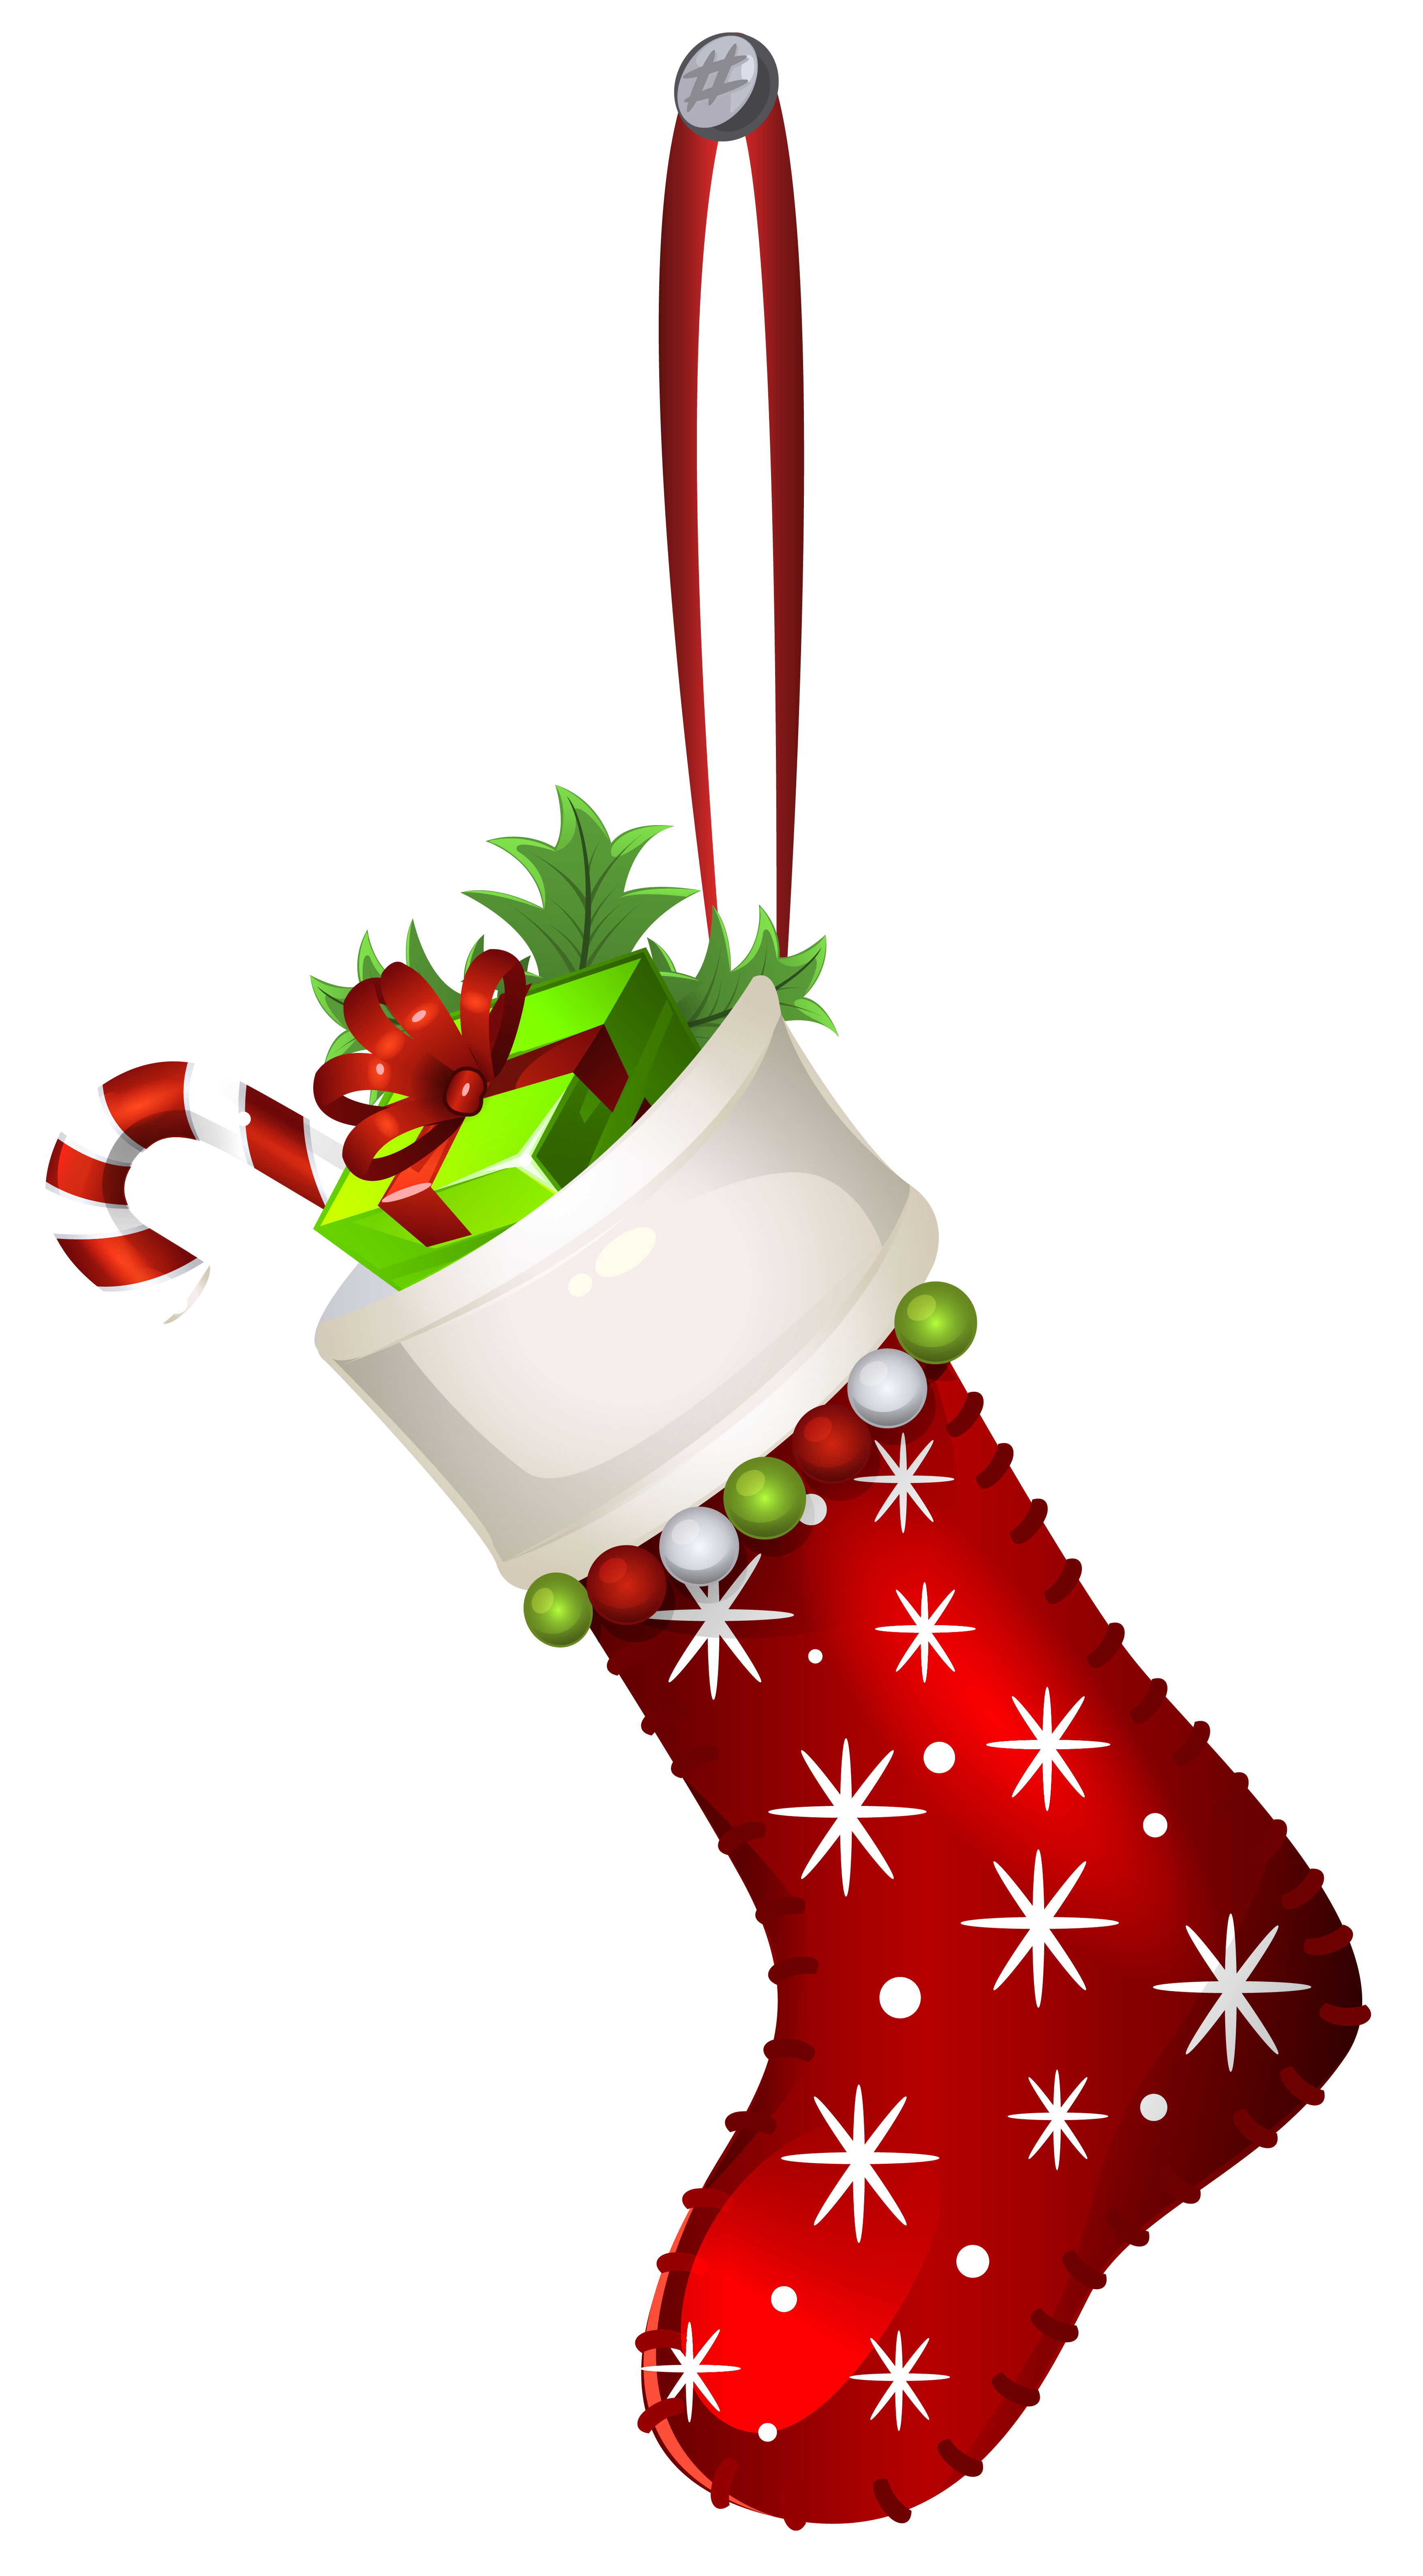 Red stocking png clip. Clipart christmas transparent background